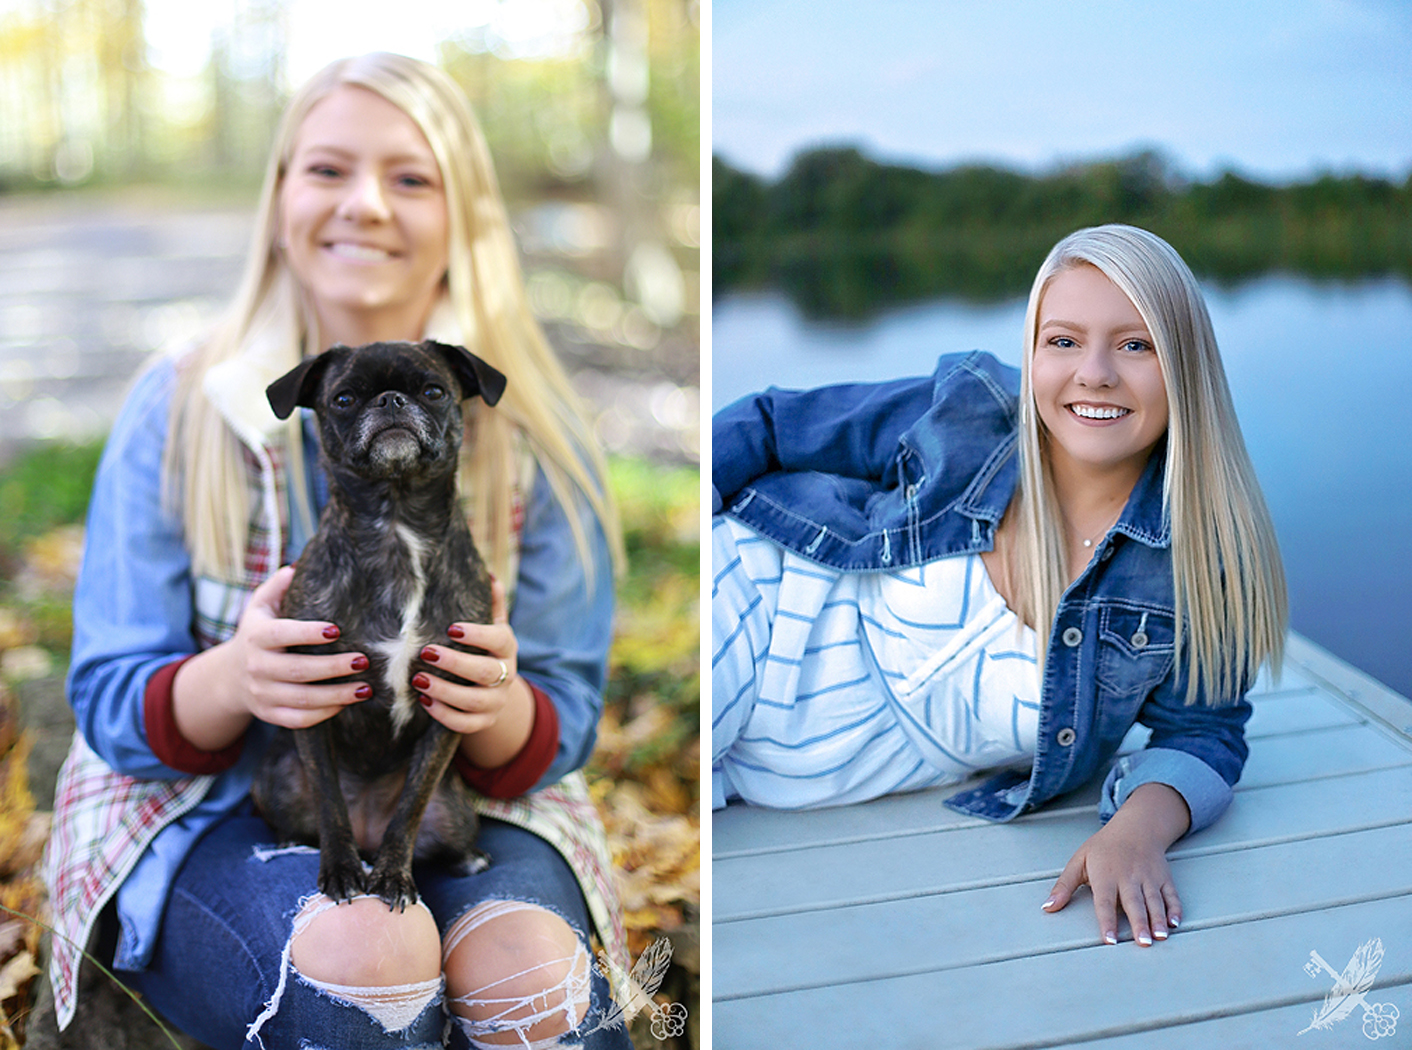 High school senior girl smiles  with small dog sitting in her lap in woods location ft wayne, with feather and key photography watermark in corner.